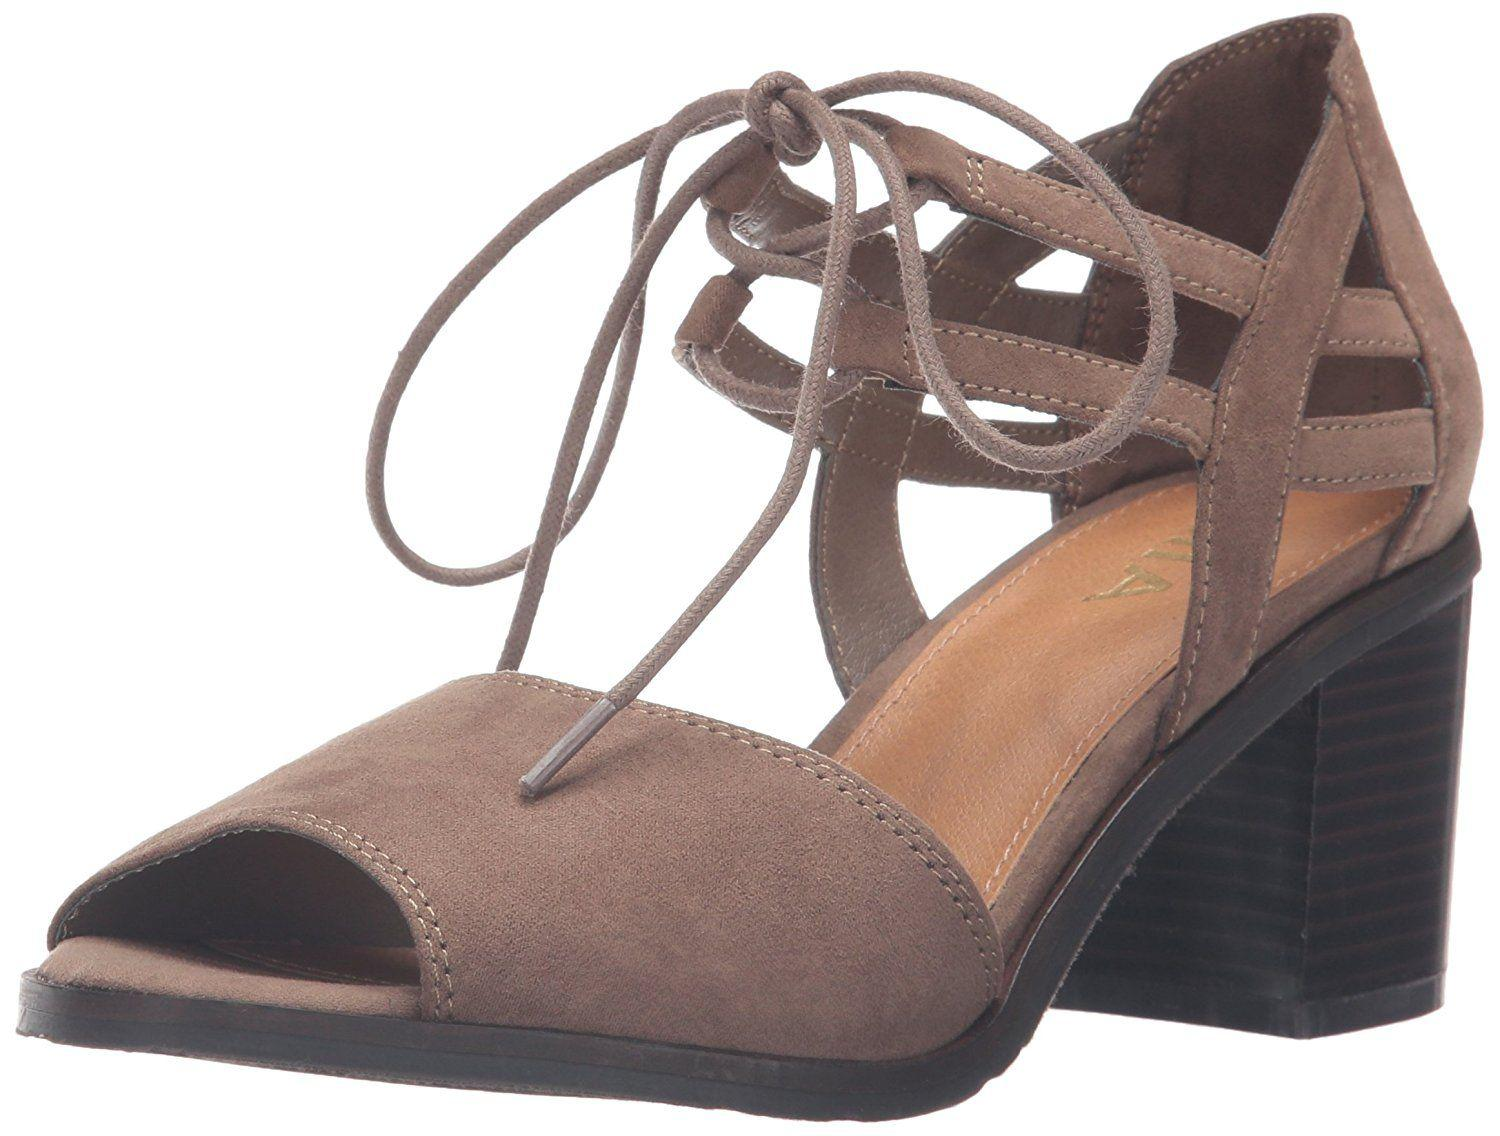 4e7253cc024 Mia Womens Luella Open Toe Casual Espadrille Sandals in Brown - Lyst